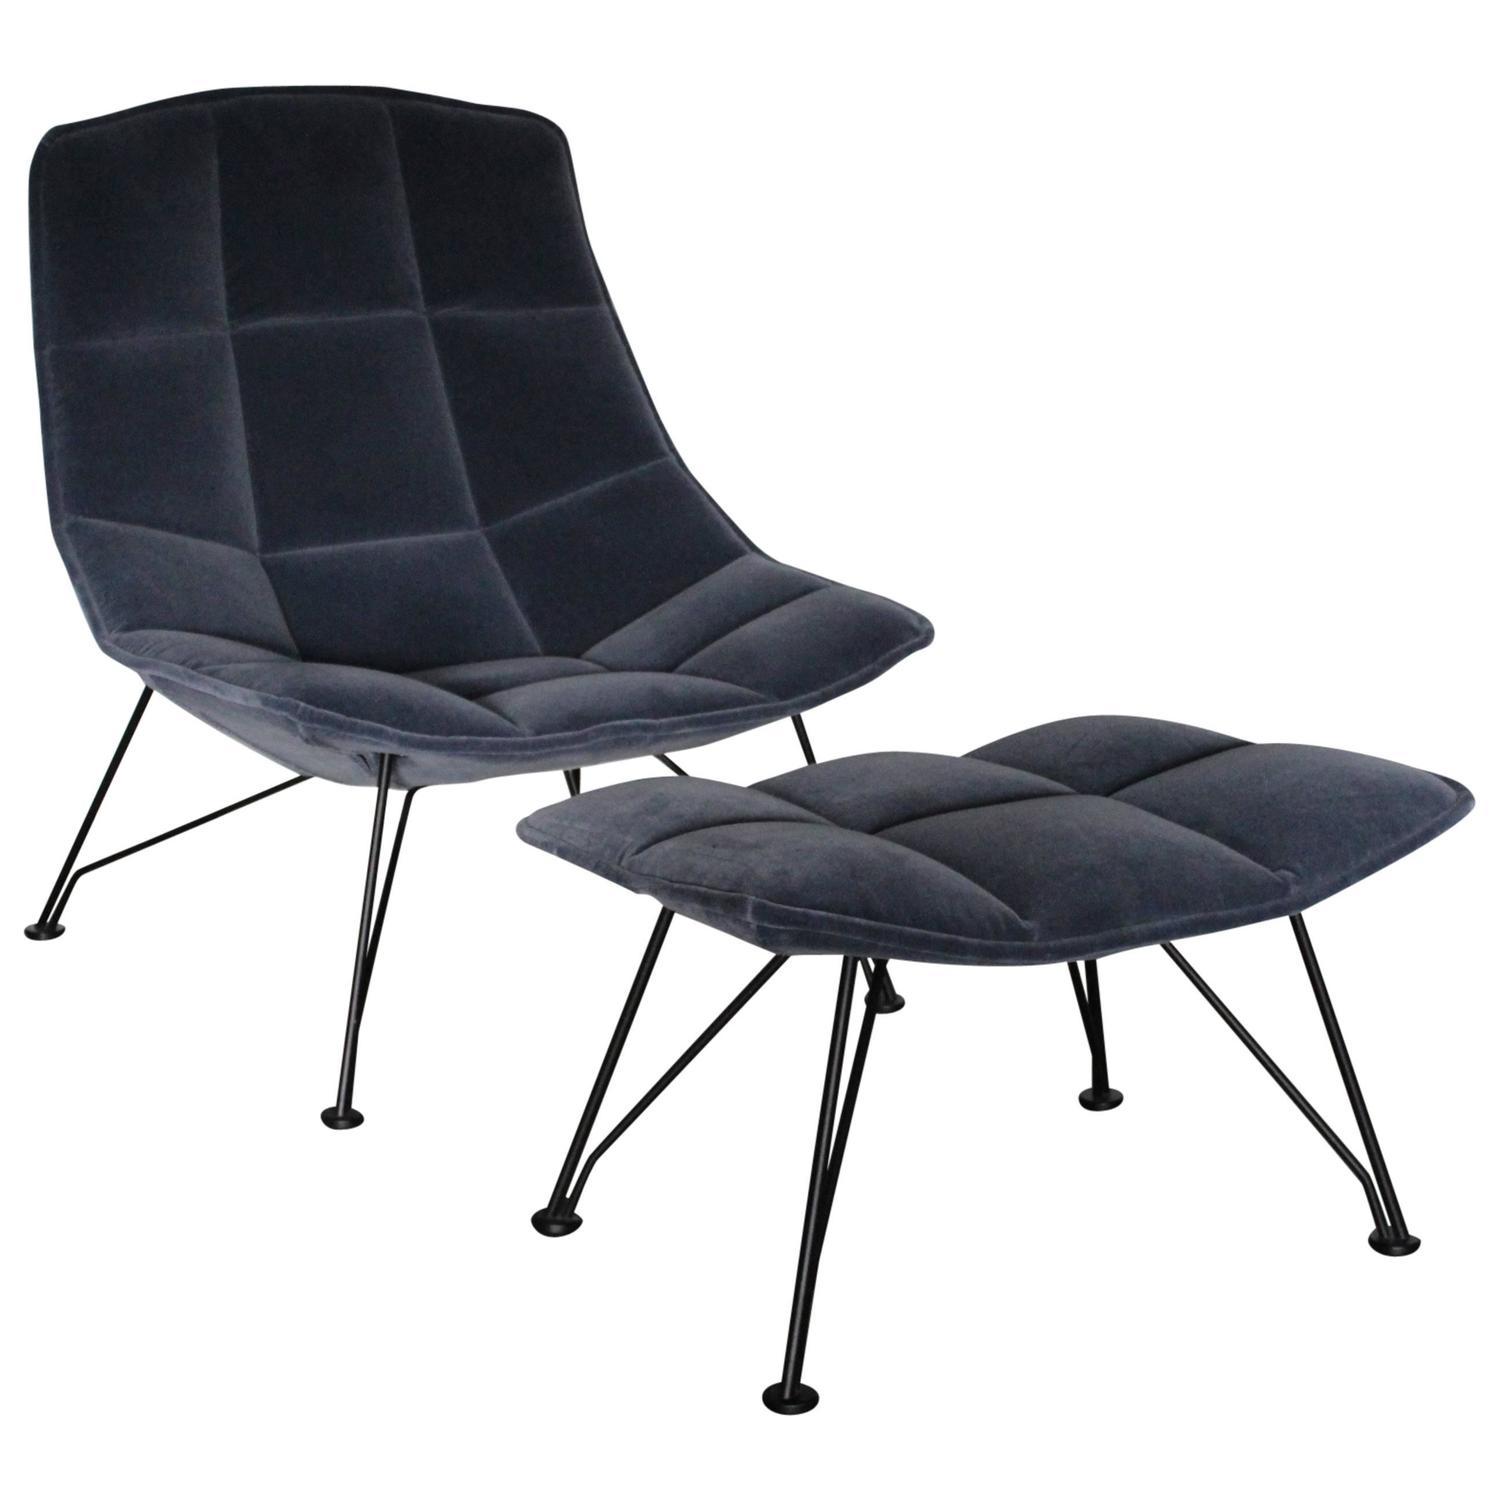 jehs laub lounge chair recliner lift chairs costco knoll studio quotjehs 43 quot and ottoman in